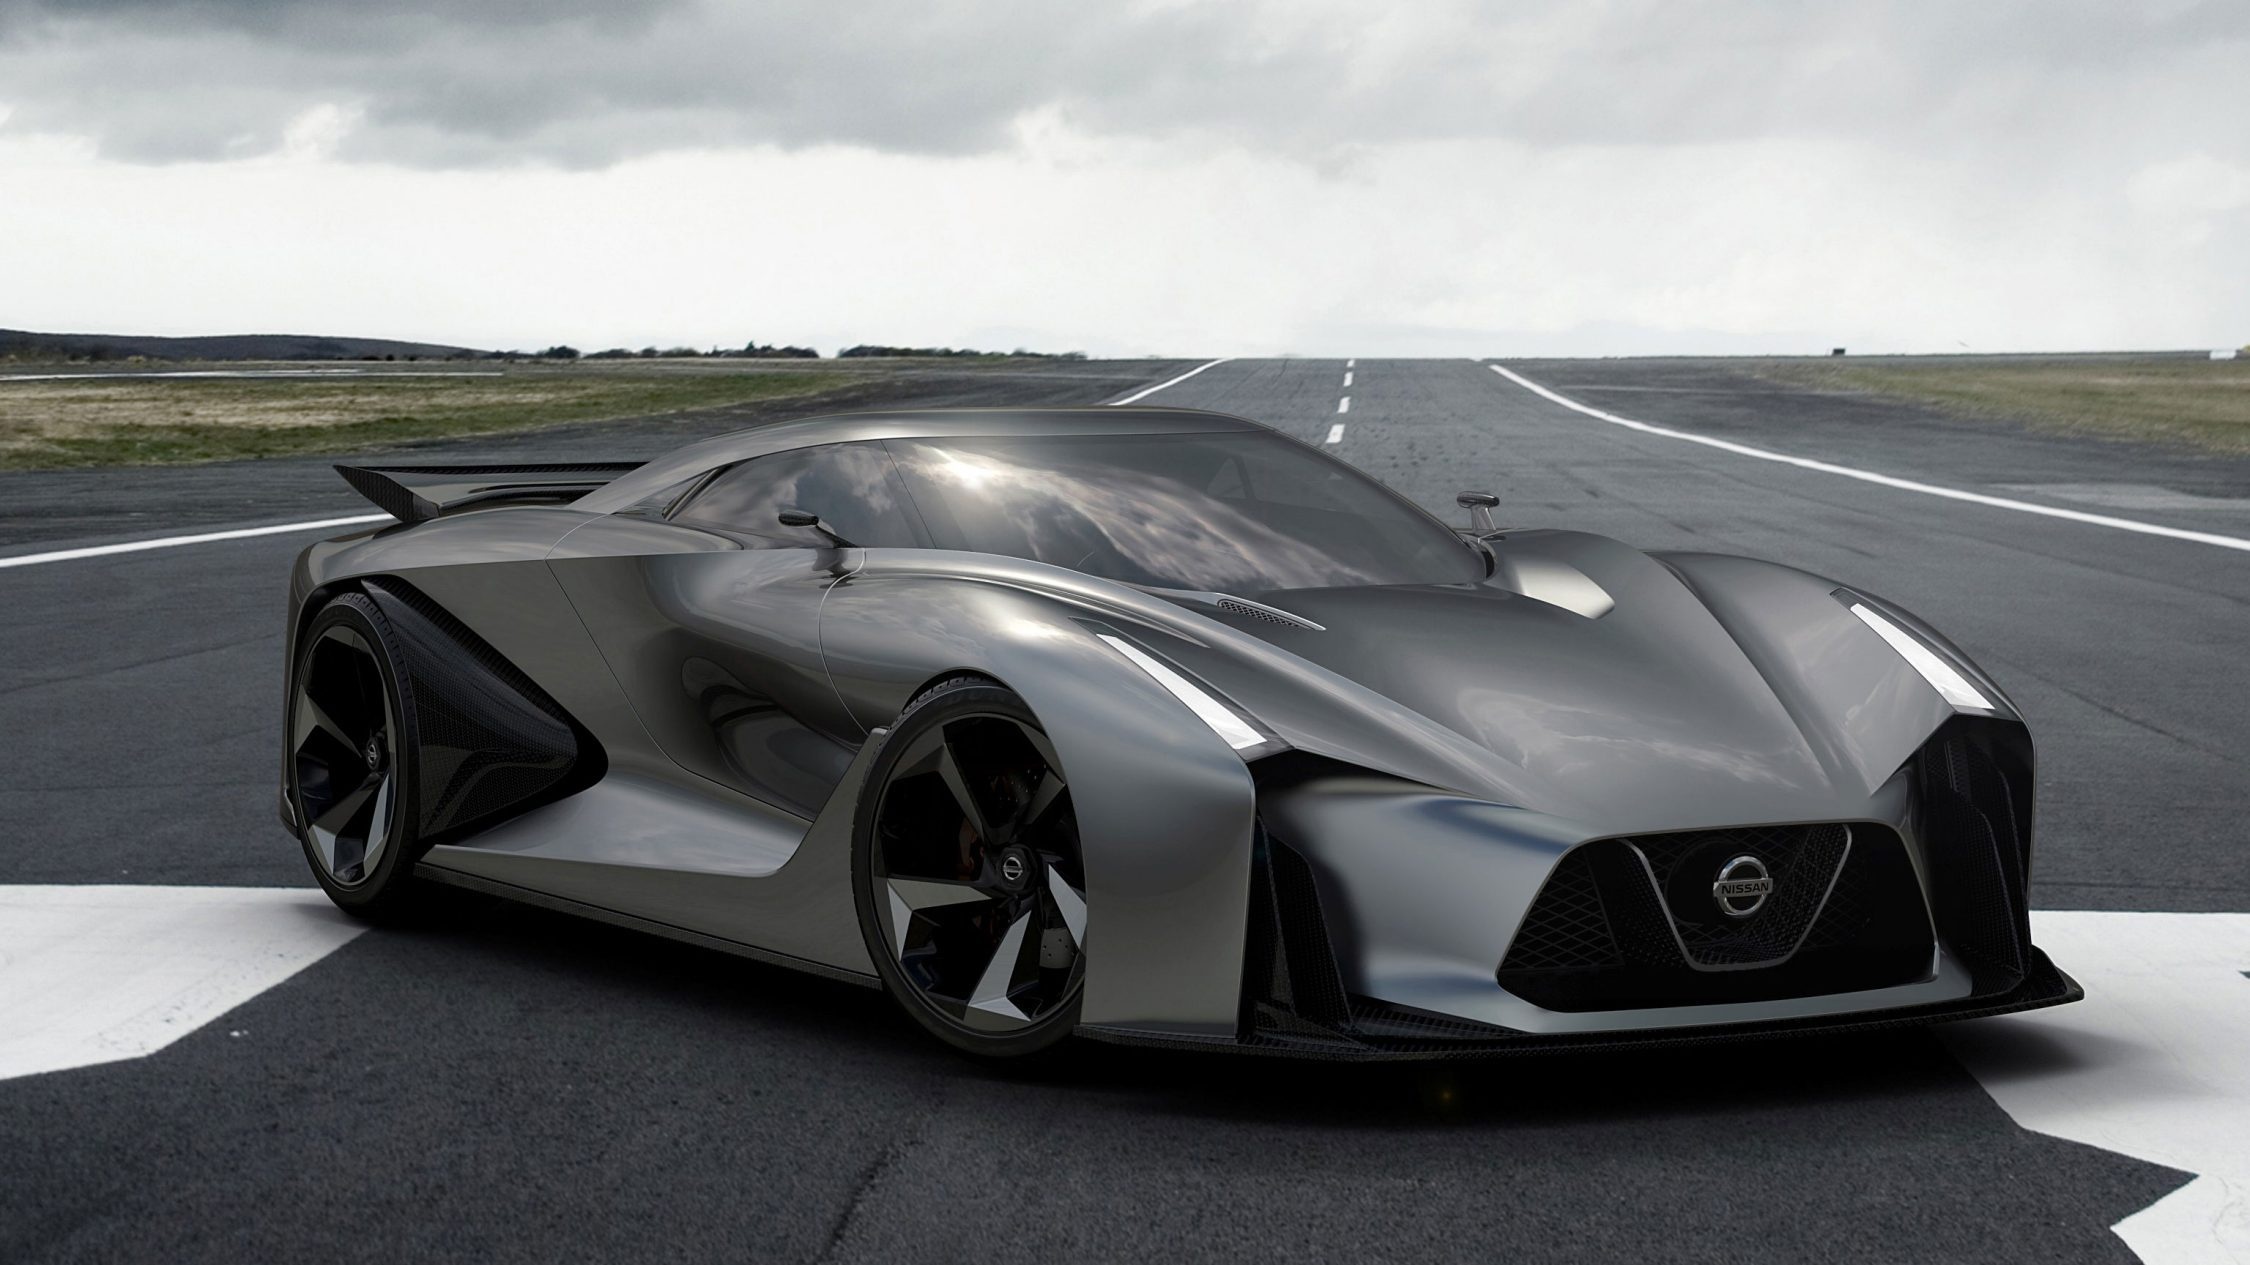 Experience Nissan - Concept car - 2020 Vision Gran Turismo - 3/4 front view